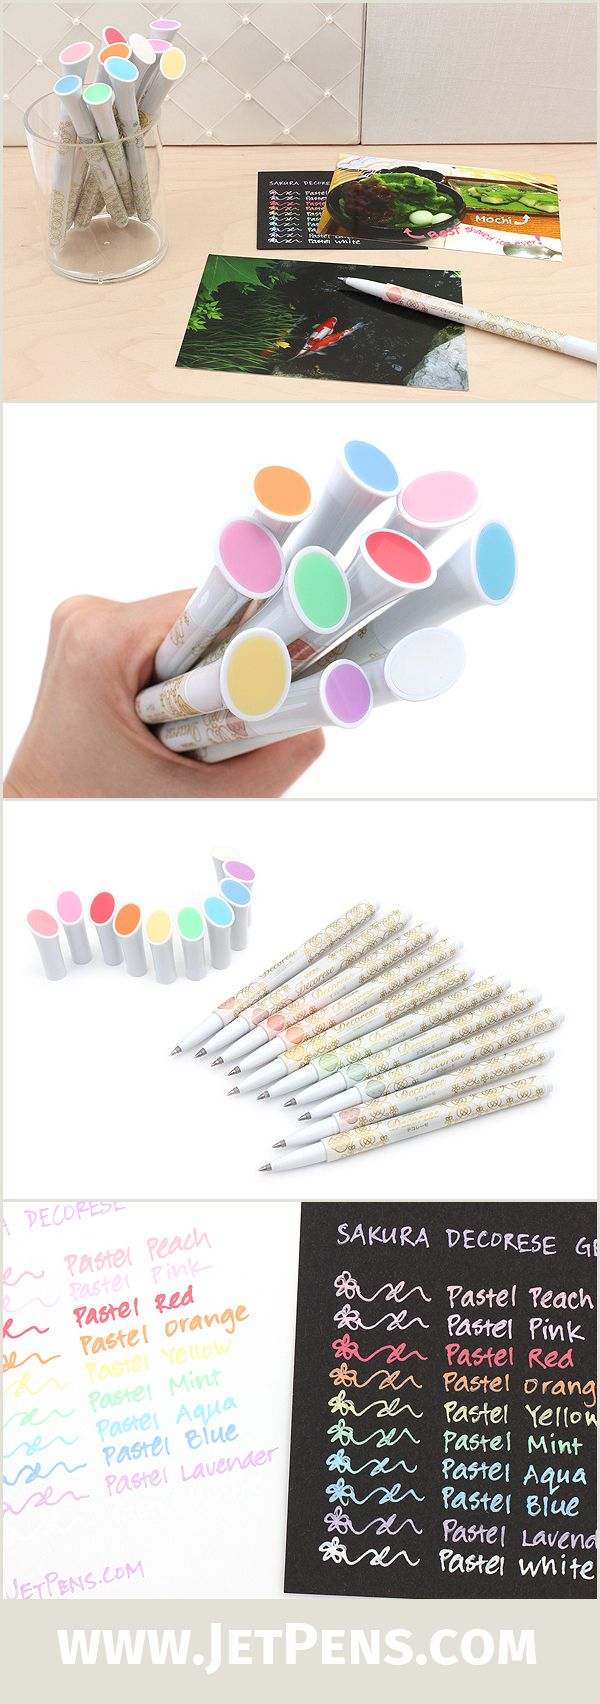 The Sakura Decorese Gel Ink Pens feature bright, pastel-colored ink, and can write on light and dark paper, as well as photos, plastic, glass, and metal!